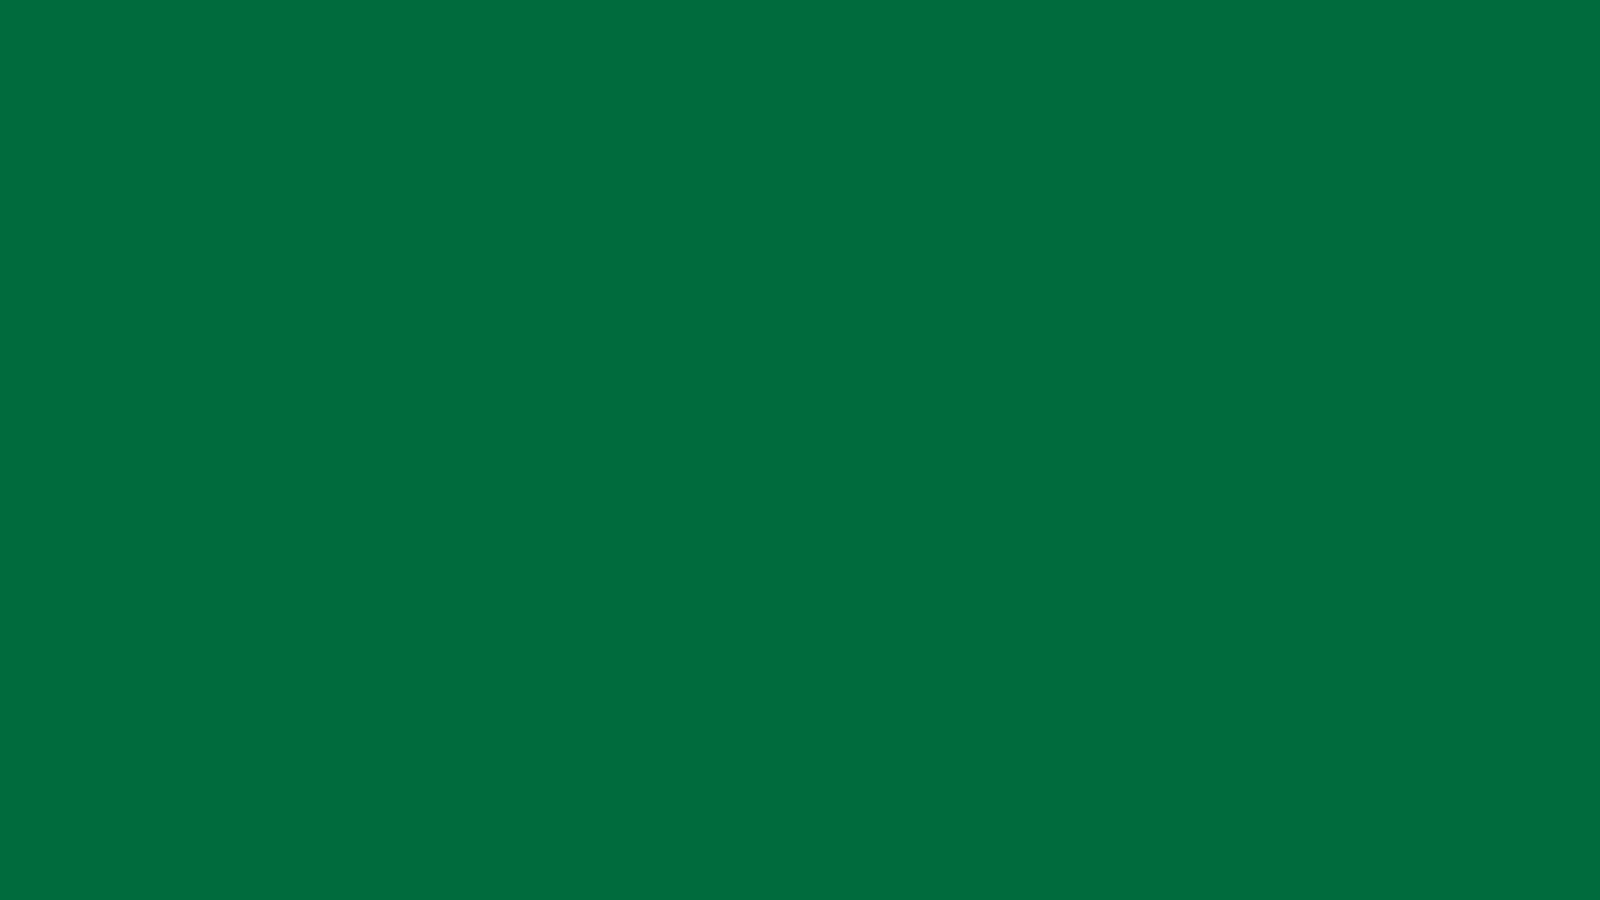 1600x900 Cadmium Green Solid Color Background